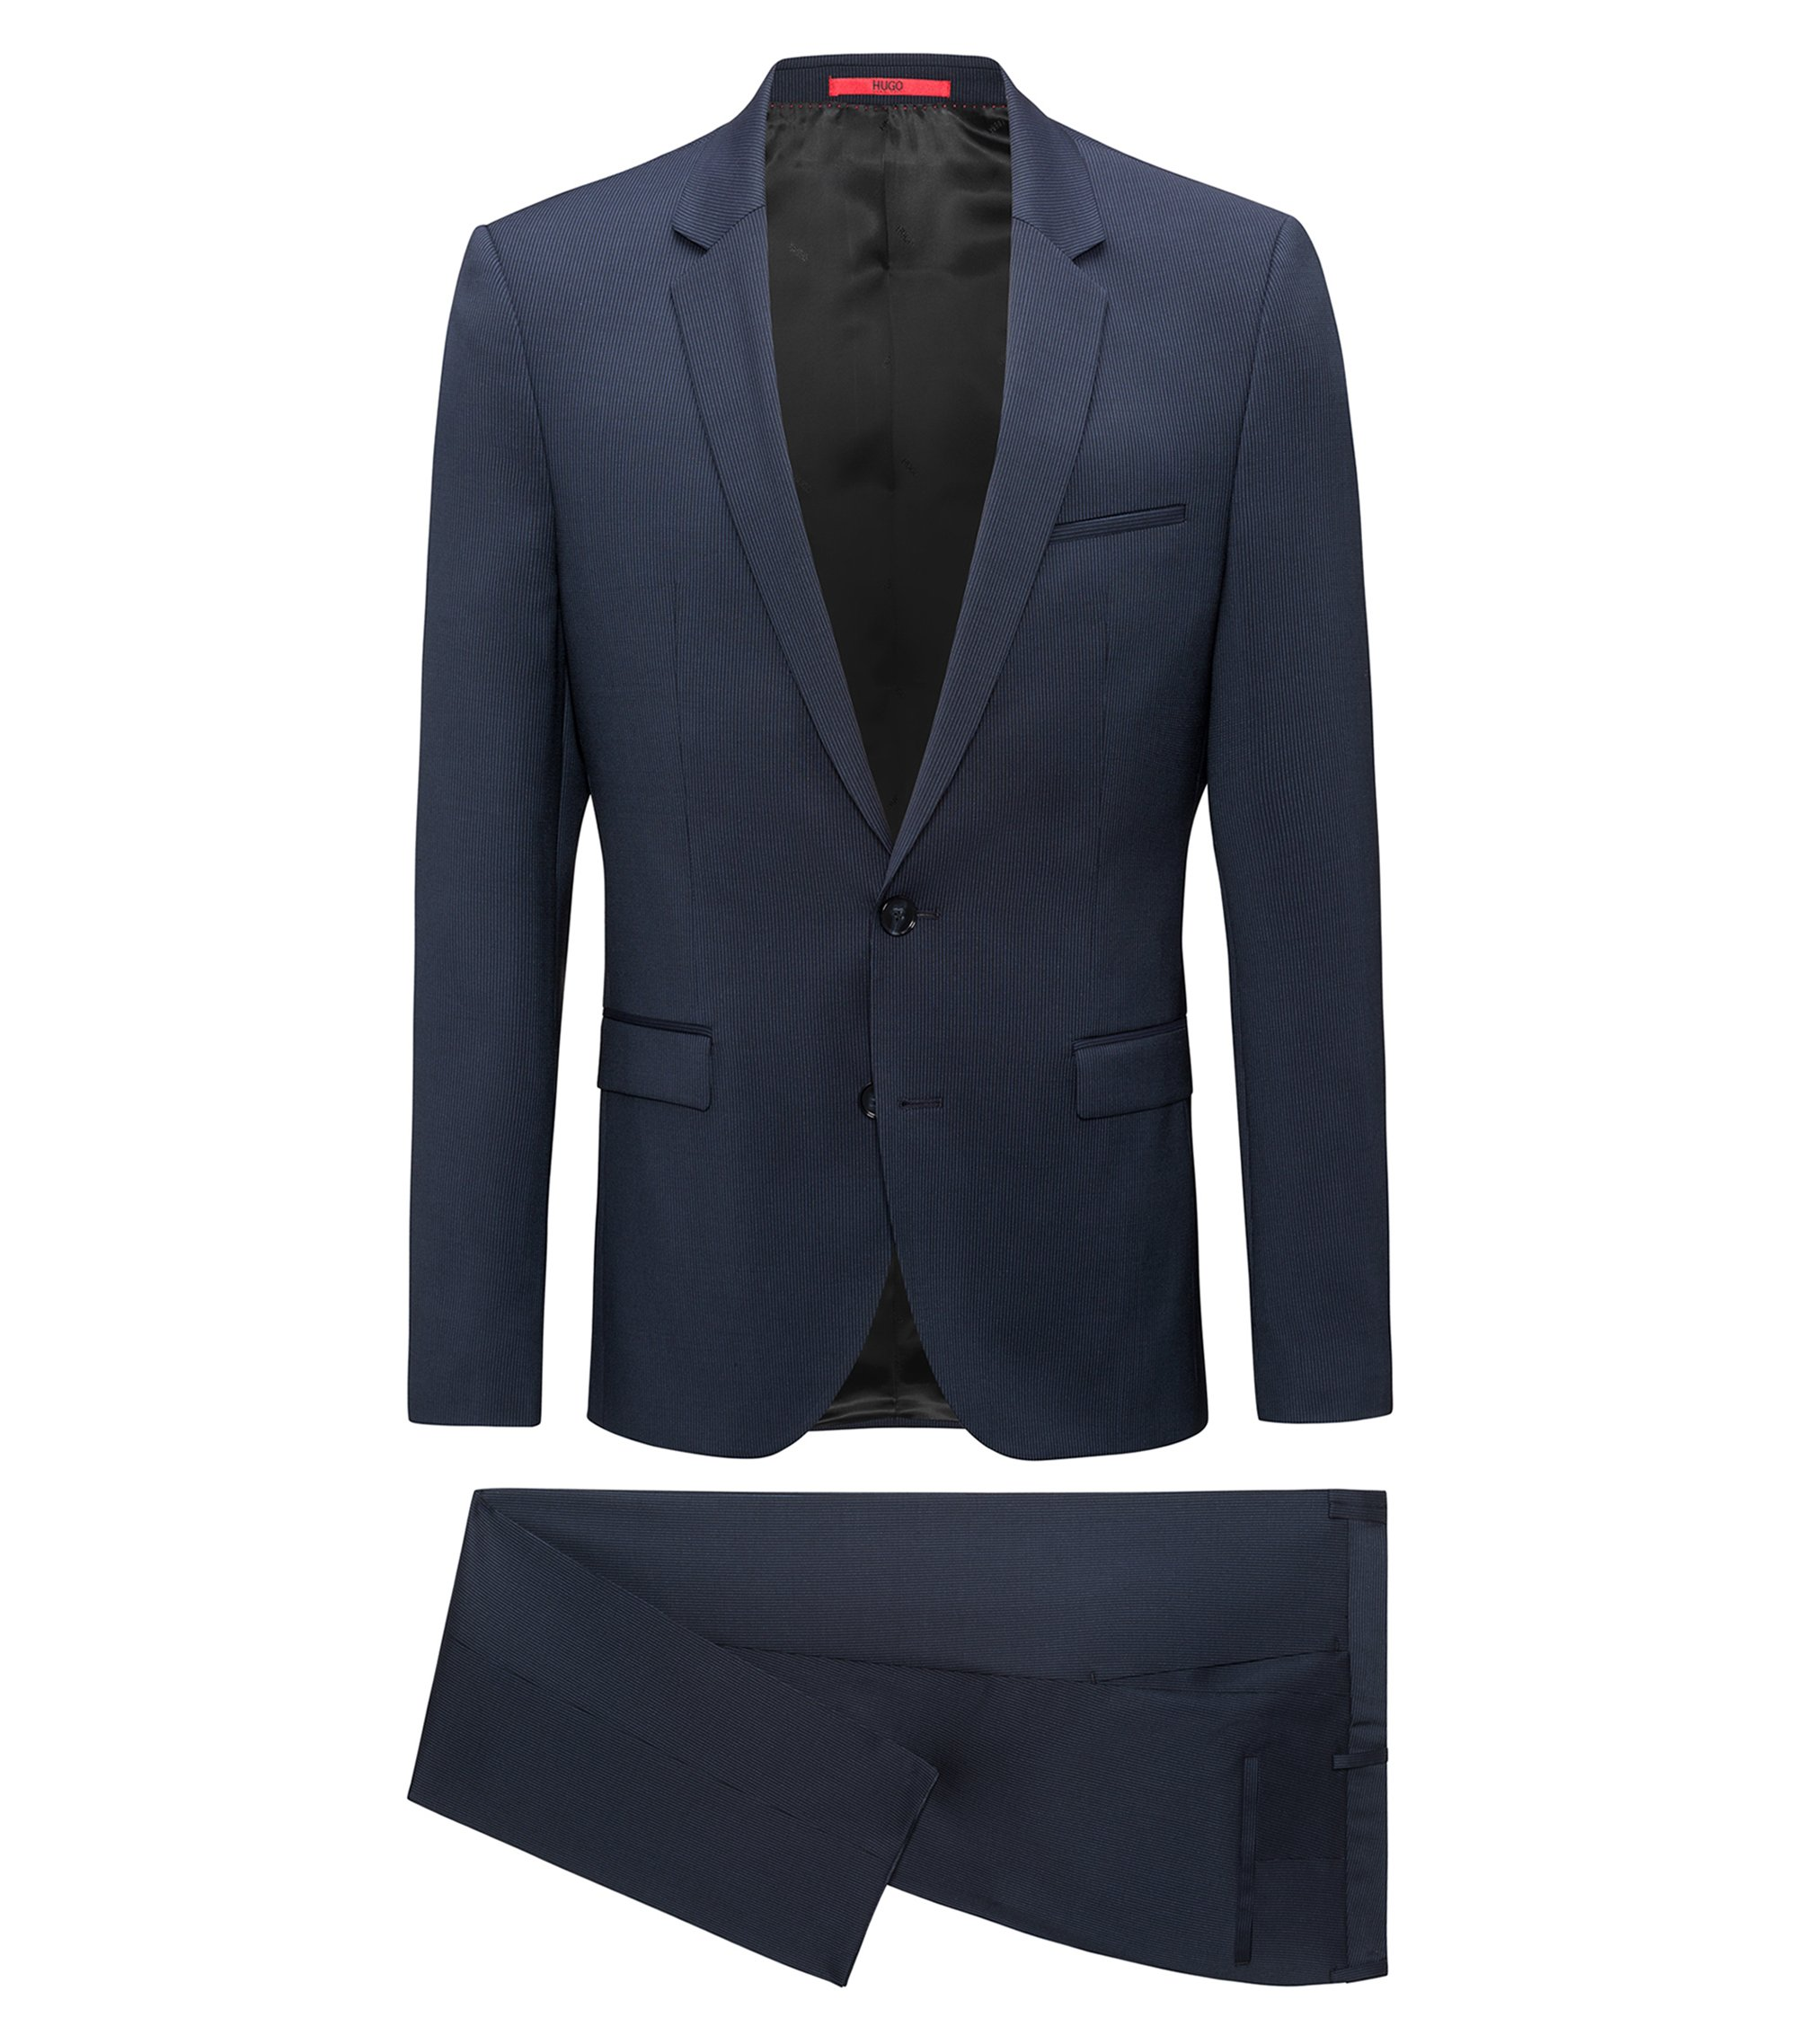 Chalkstripe Virgin Wool Suit, Extra Slim Fit | Phil/Taylor, Dark Blue